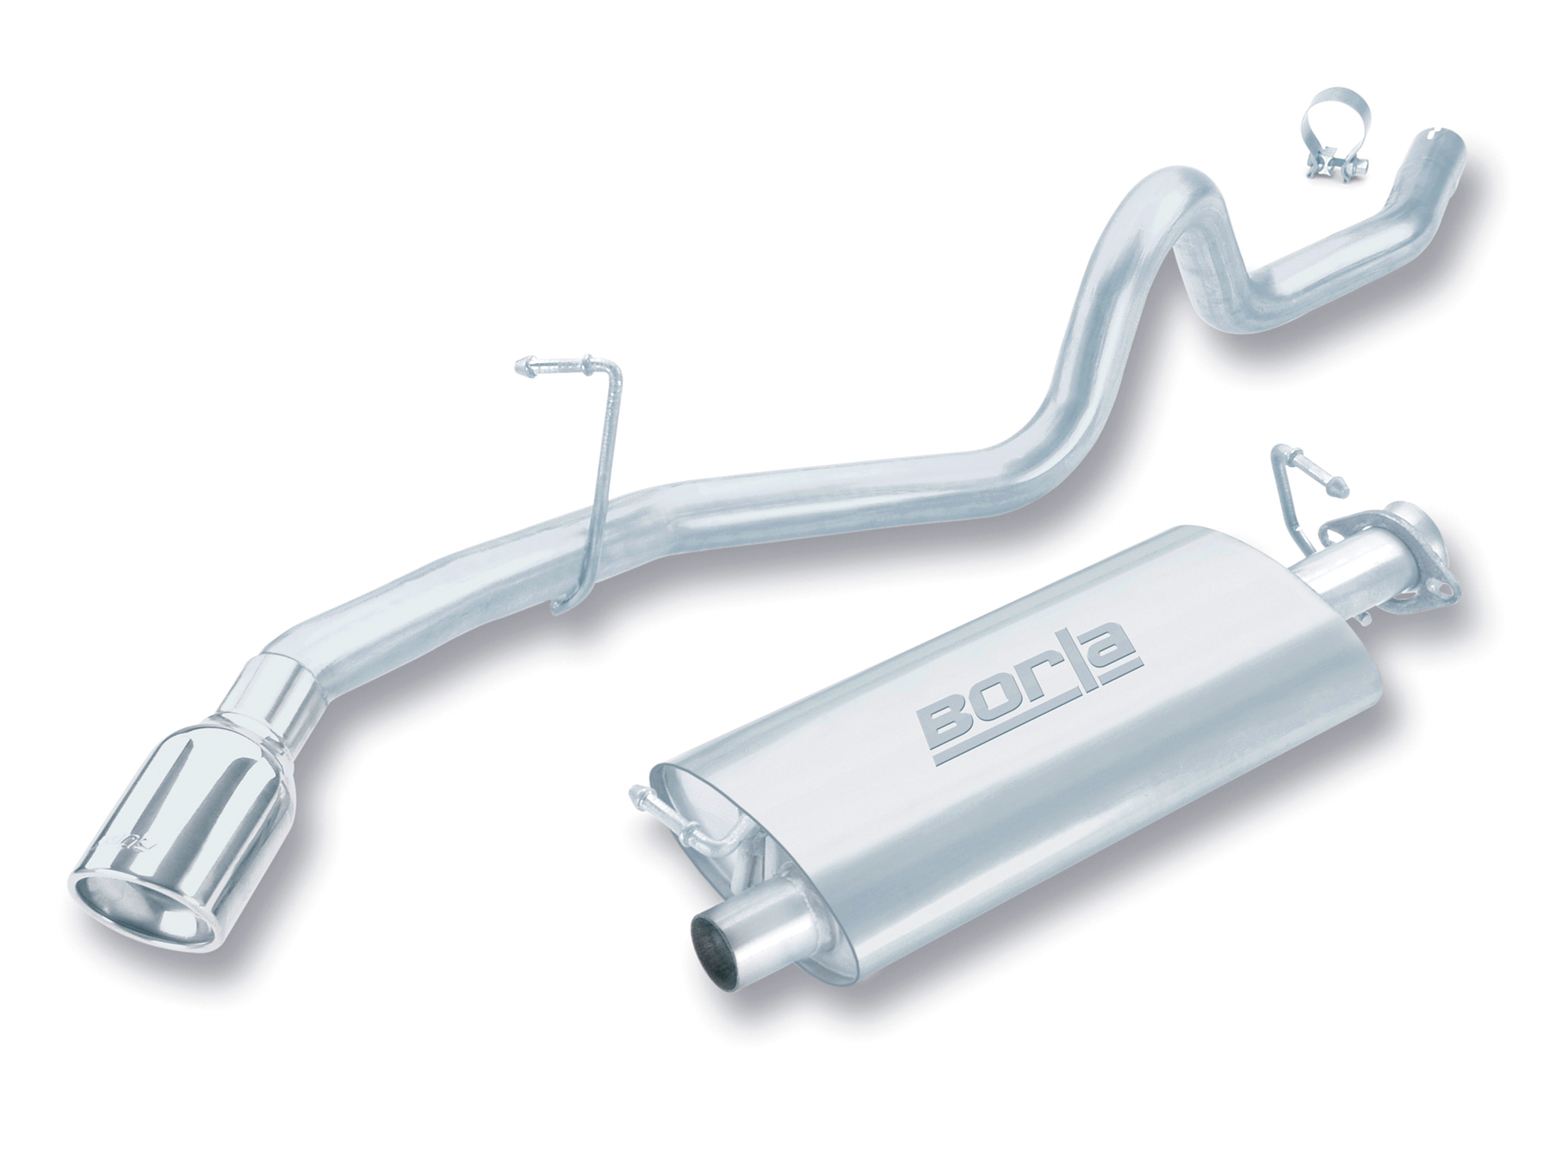 "Land Rover Discovery I. 3.9l/4.0l V8 1994-1999 Borla 2.25"" Cat-Back Exhaust System - Single Round Rolled Angle-Cut"